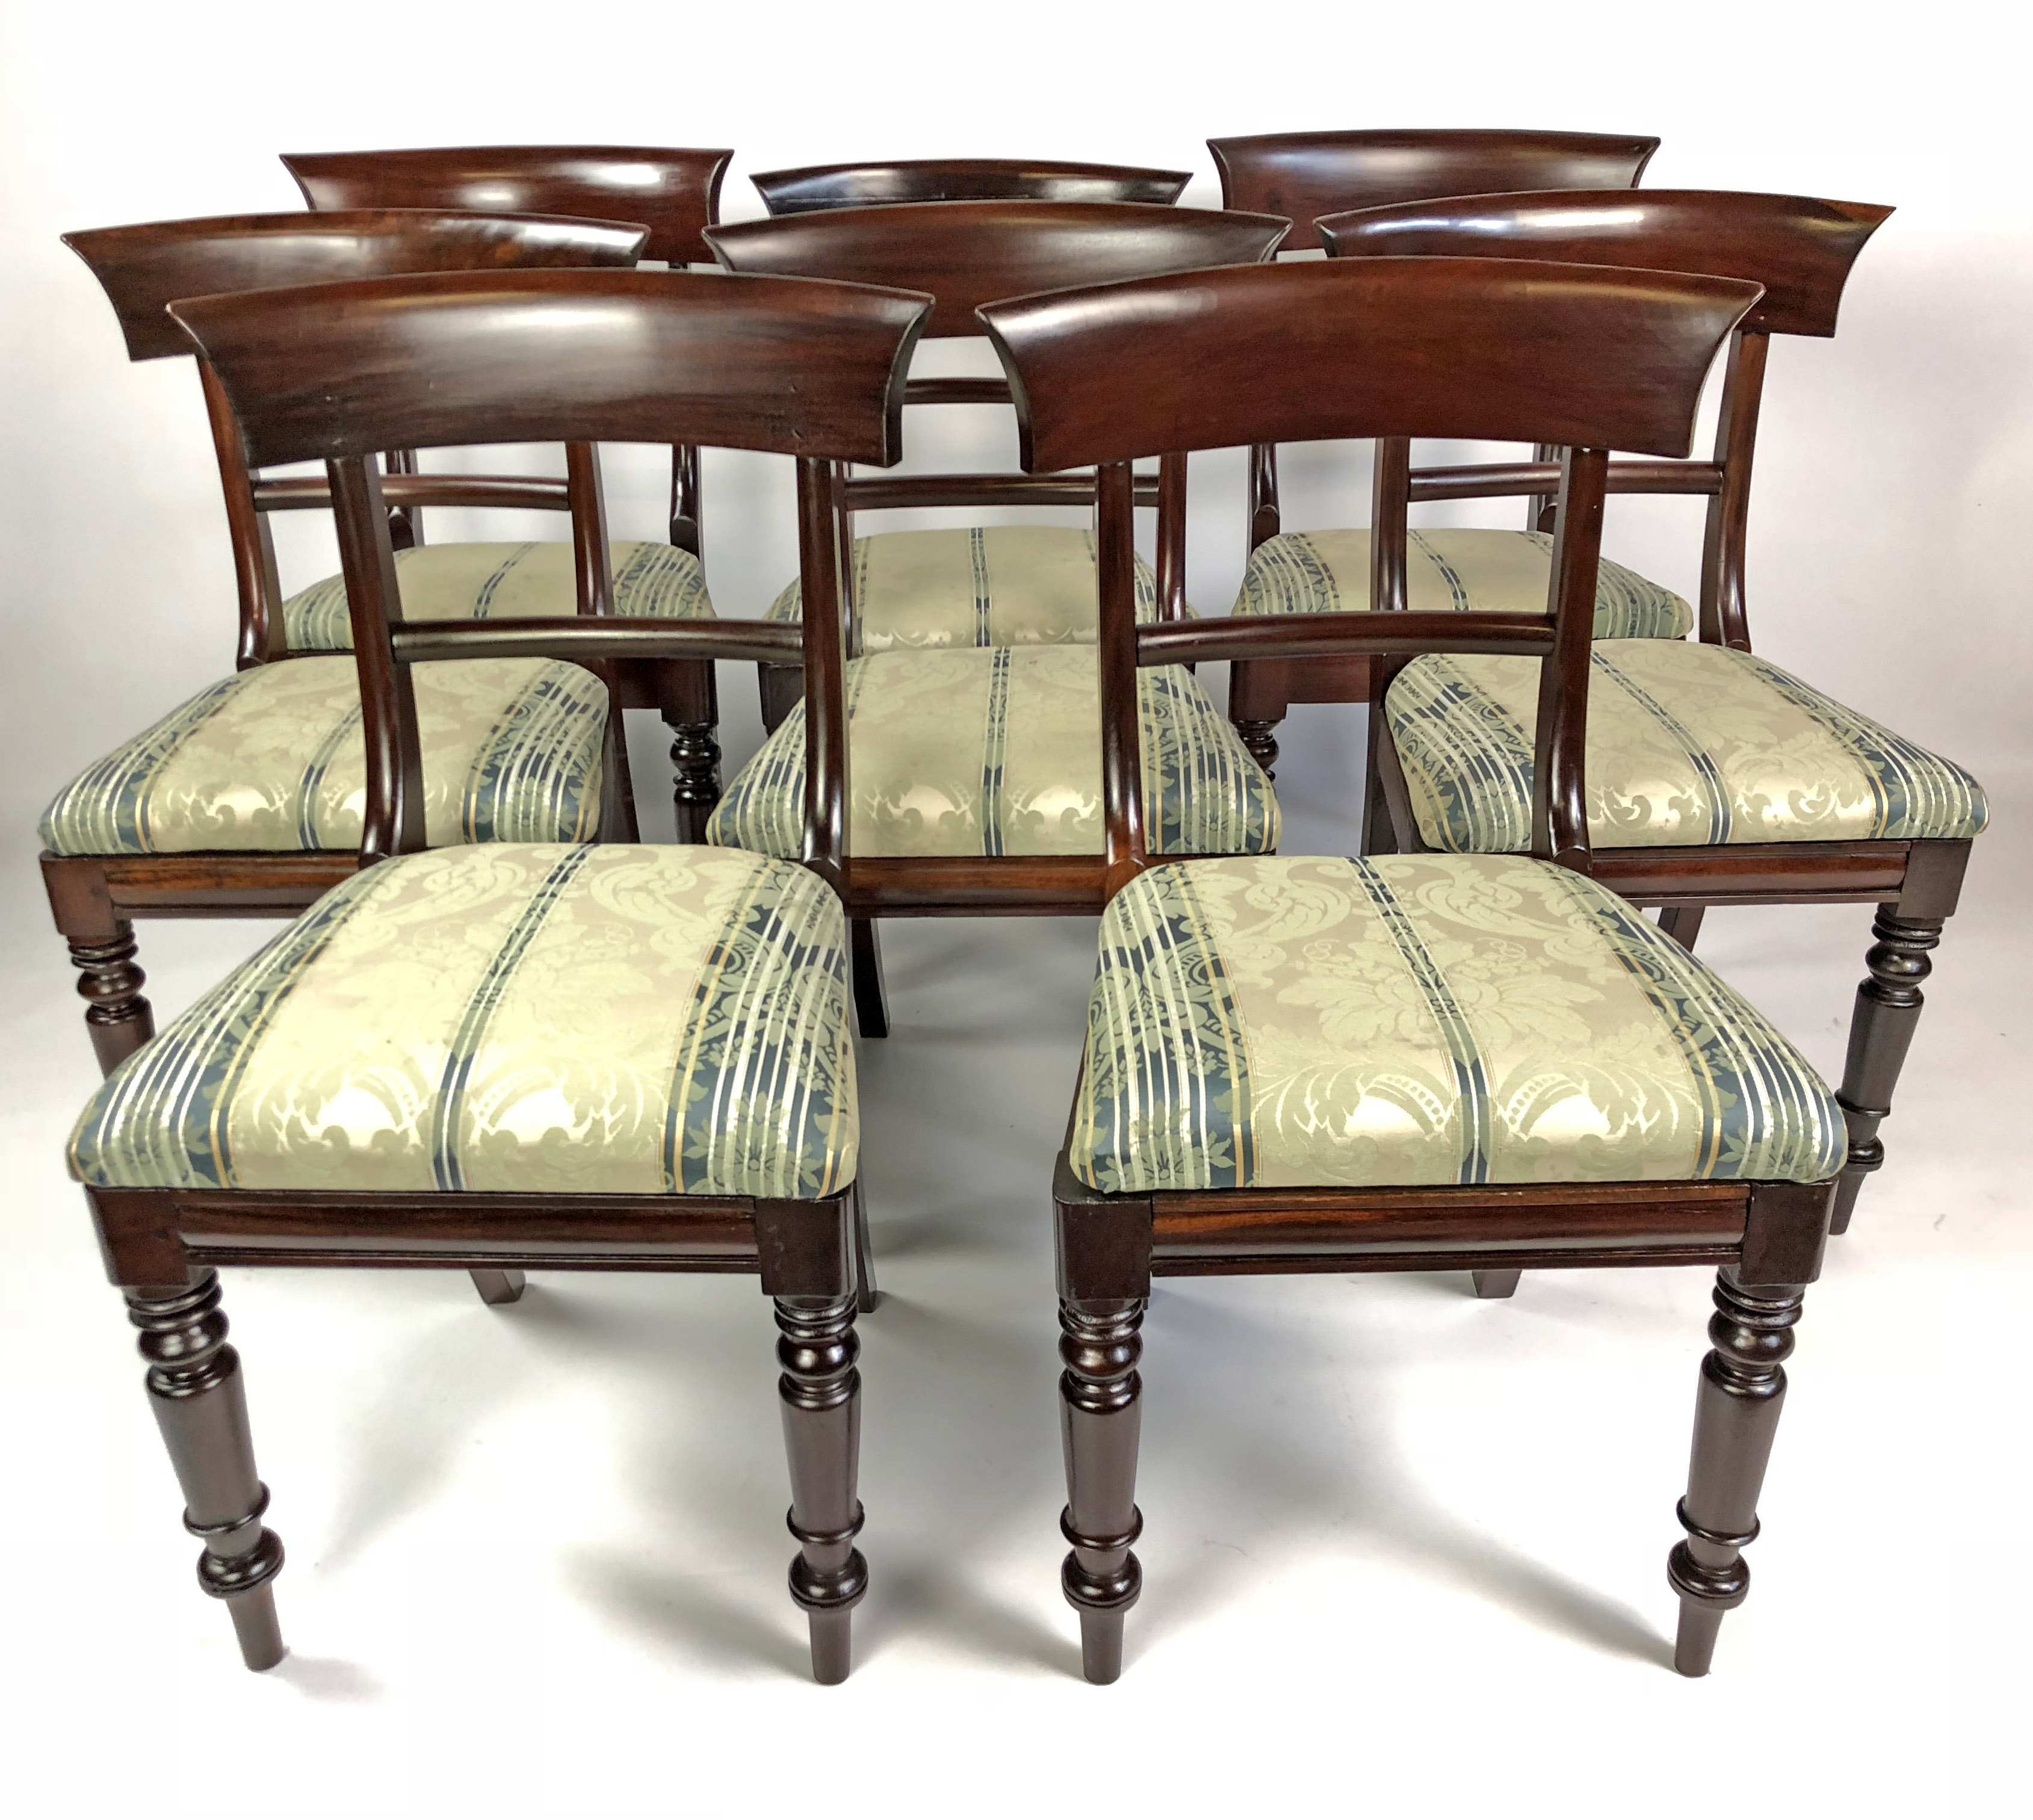 chairs product childs regency antique period chair sold